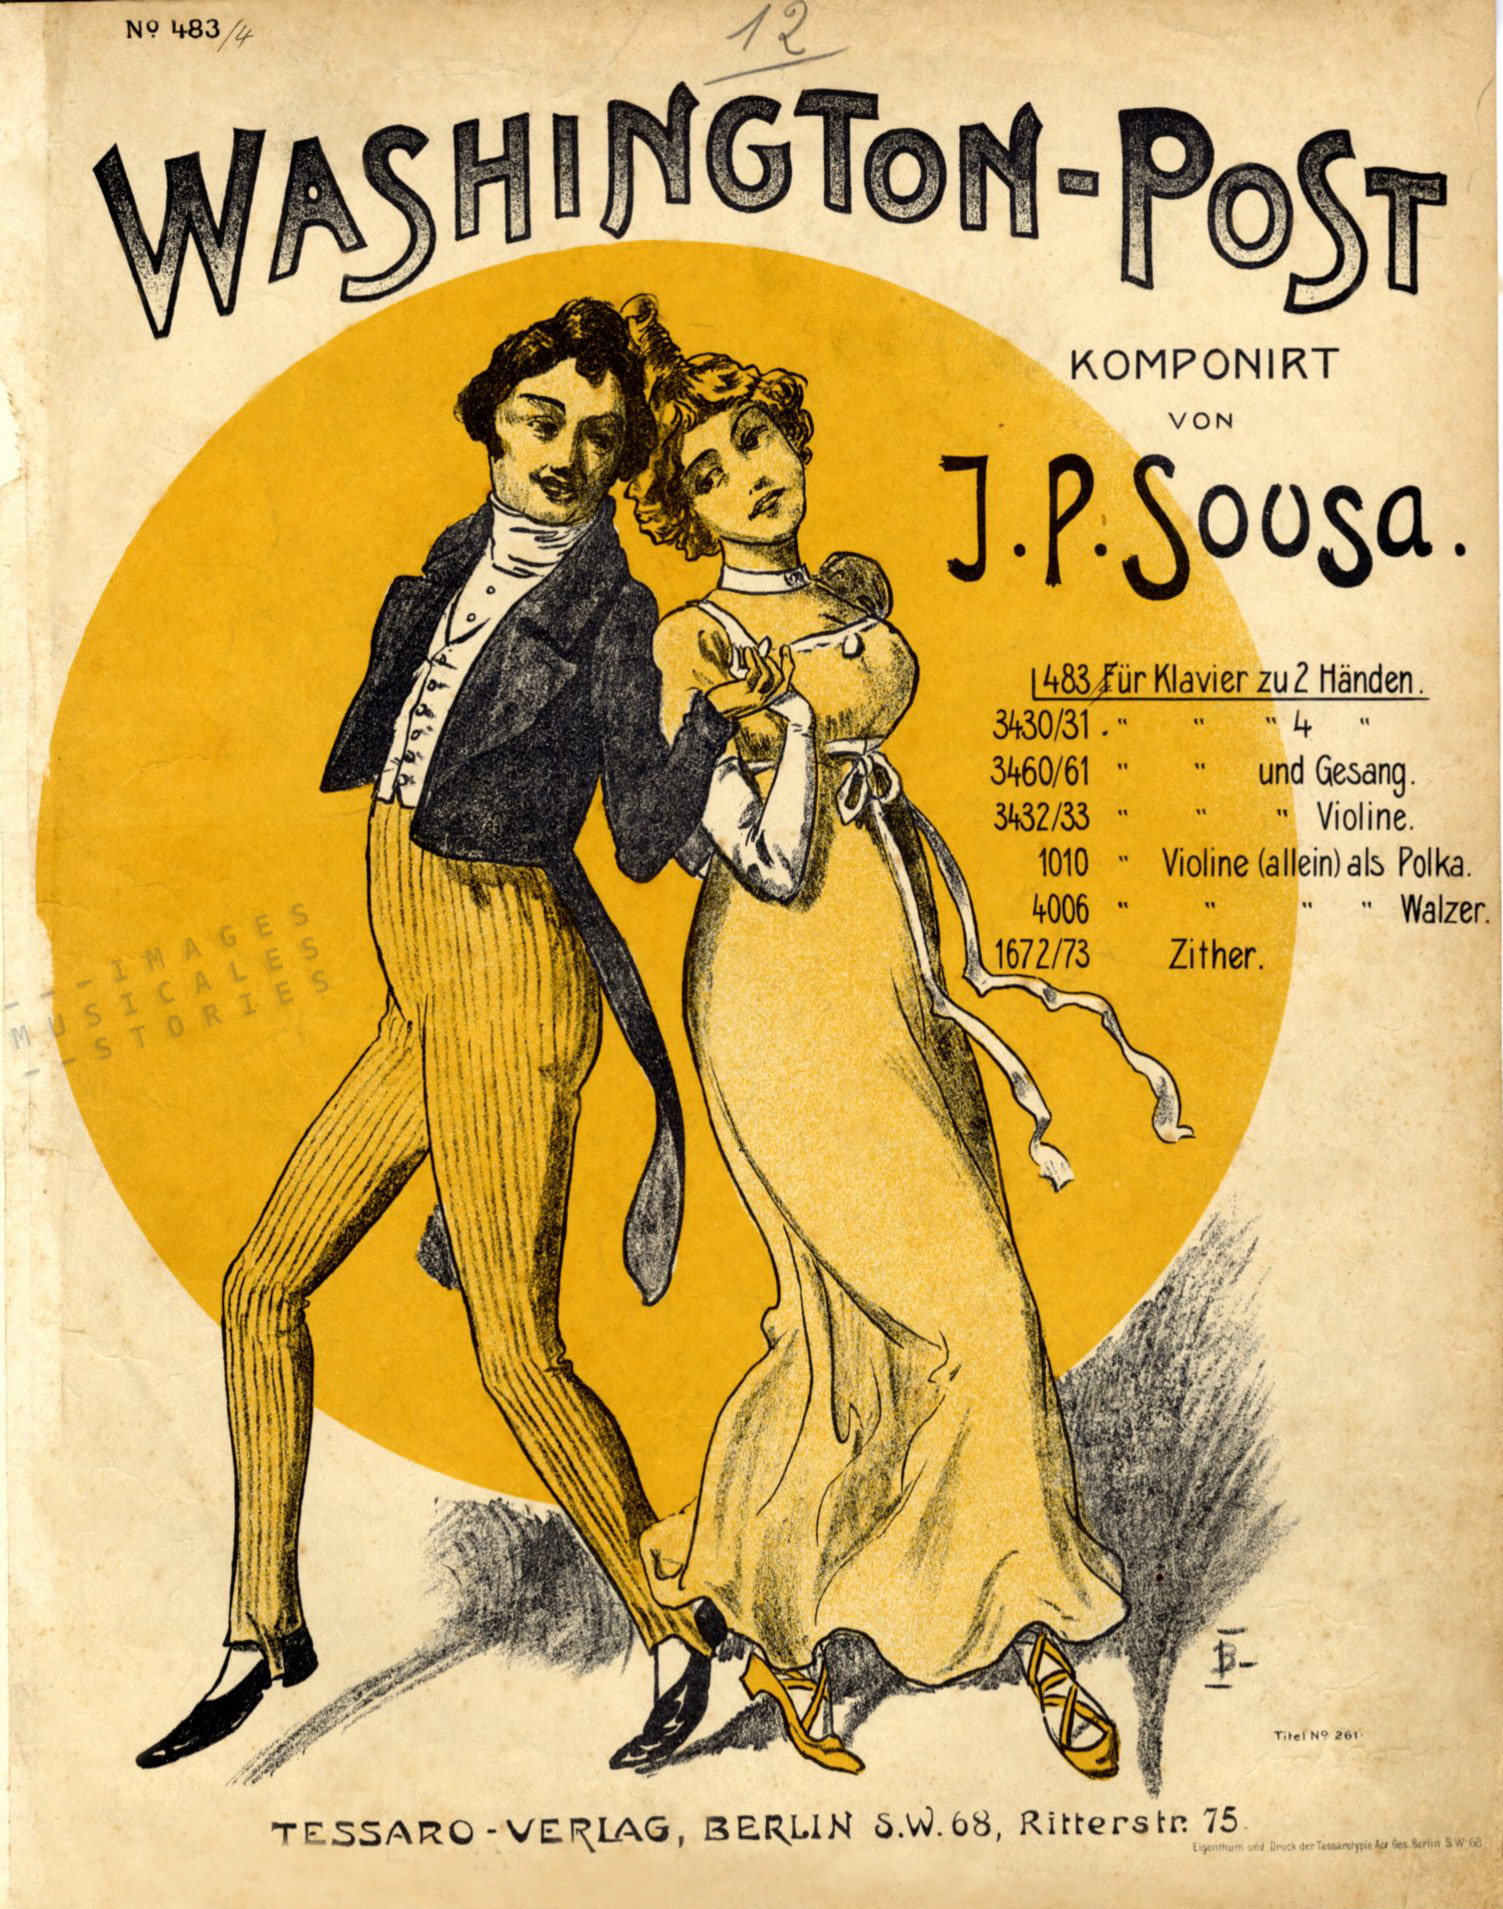 Sheet Music cover (The Washington Post, J. P. Sousa) ill. by J. Bahr